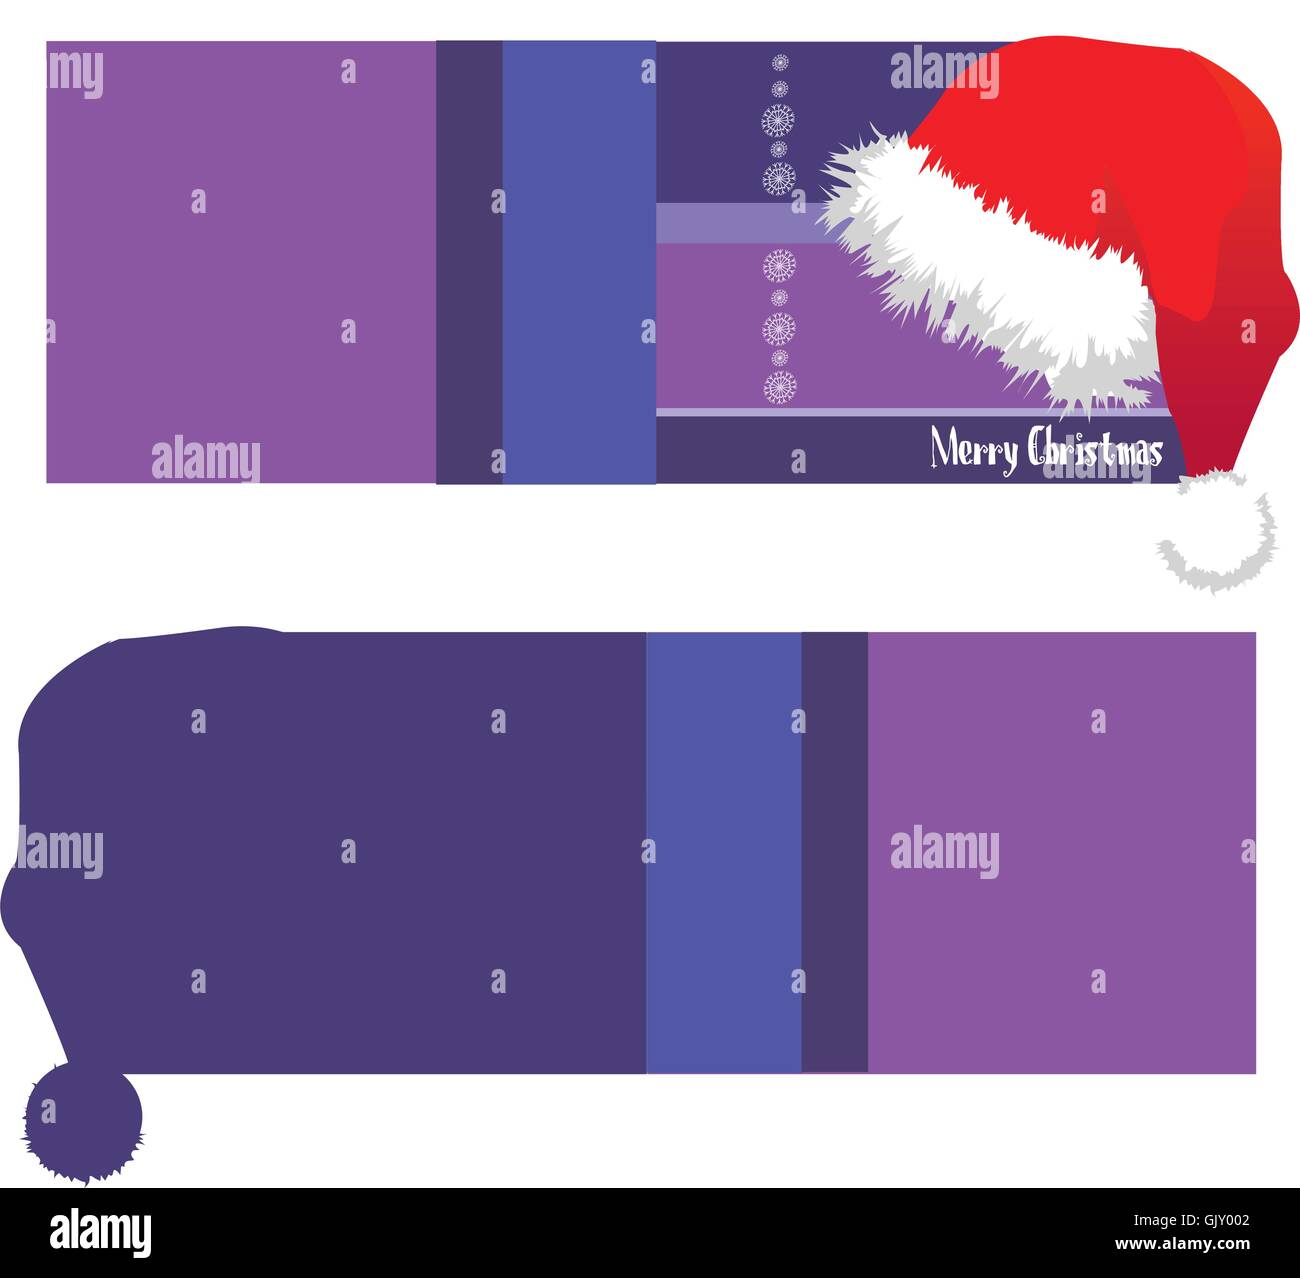 Christmas Card Santa - Stock Vector